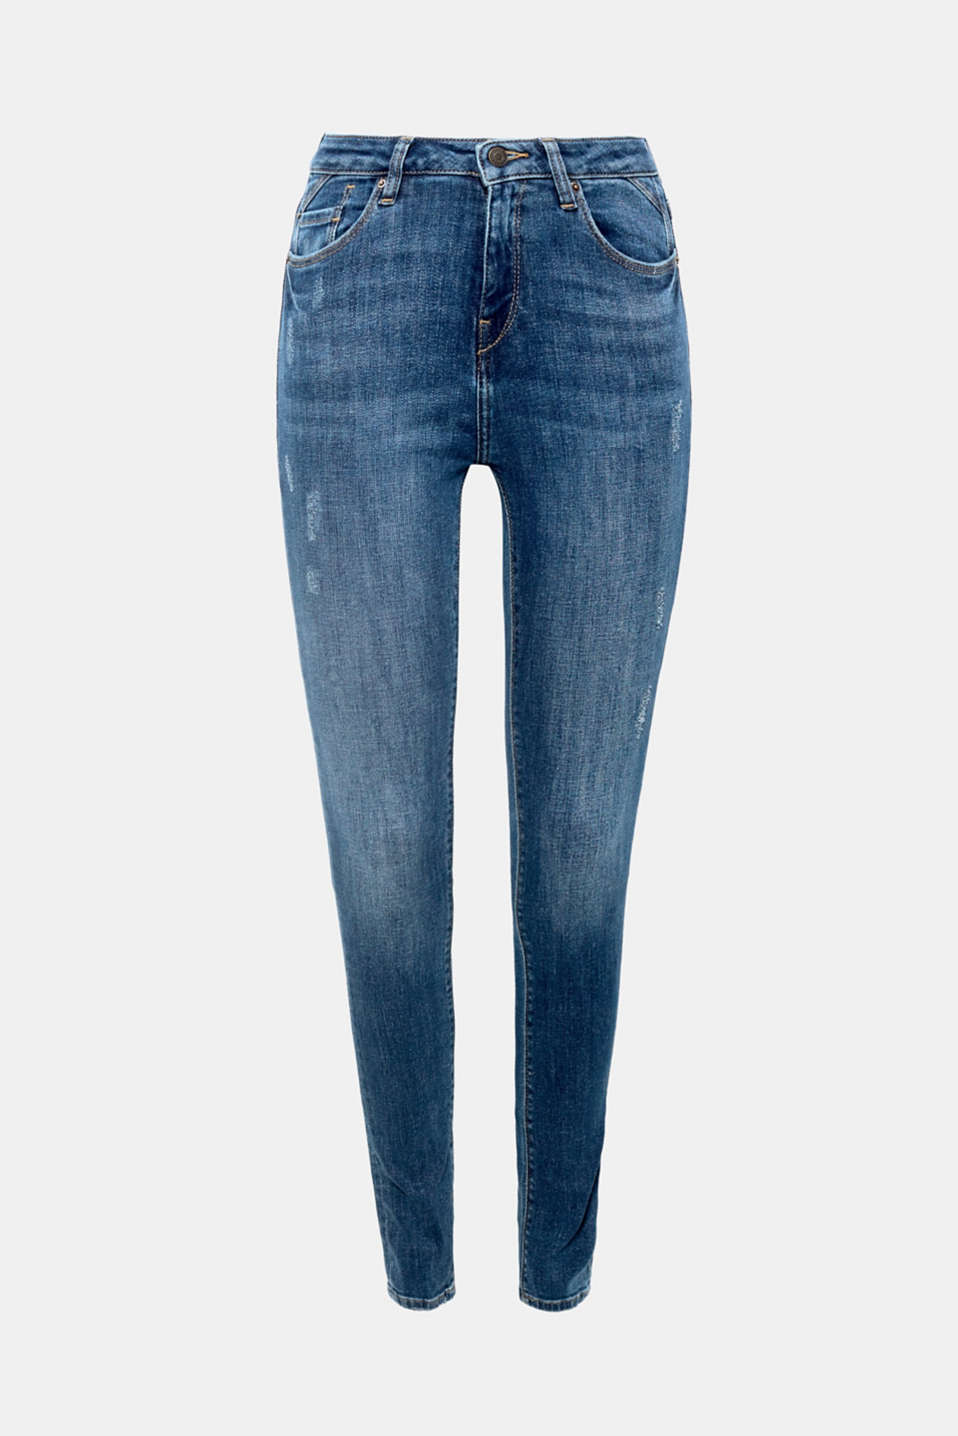 Nice and slim with a vintage touch - these stretch jeans have just the right details for a trendy, sexy and hip look!